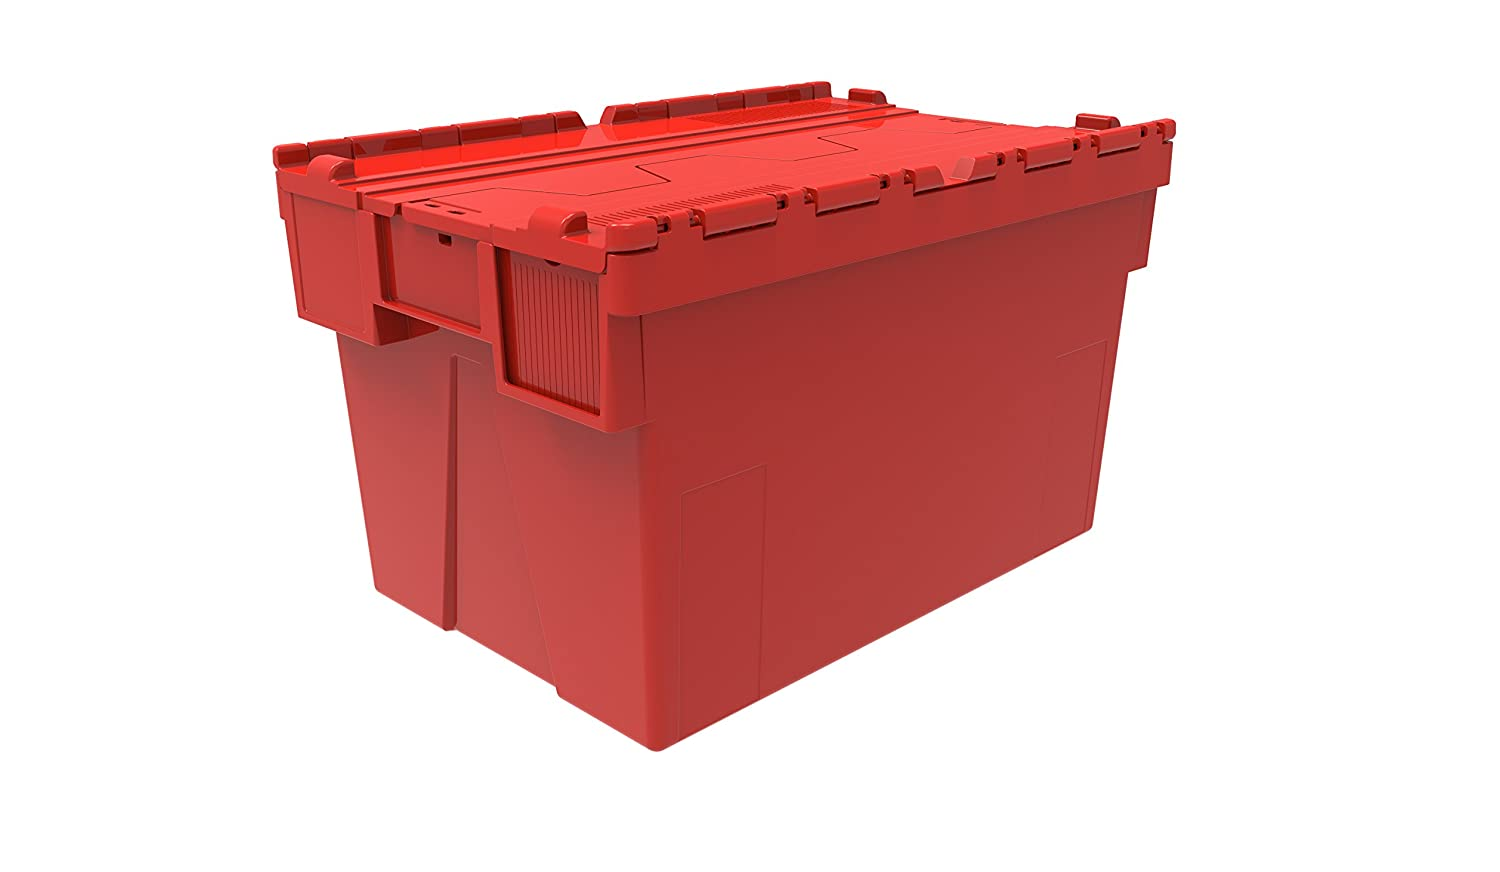 2 x Colour Coded Attached Lidded Plastic Box 65 Litres - Red, Blue or Green Plastic Storage Box Container Crate Tote with Tessellated Lid Design - Attached Lid Box (Green) by Solent Plastics